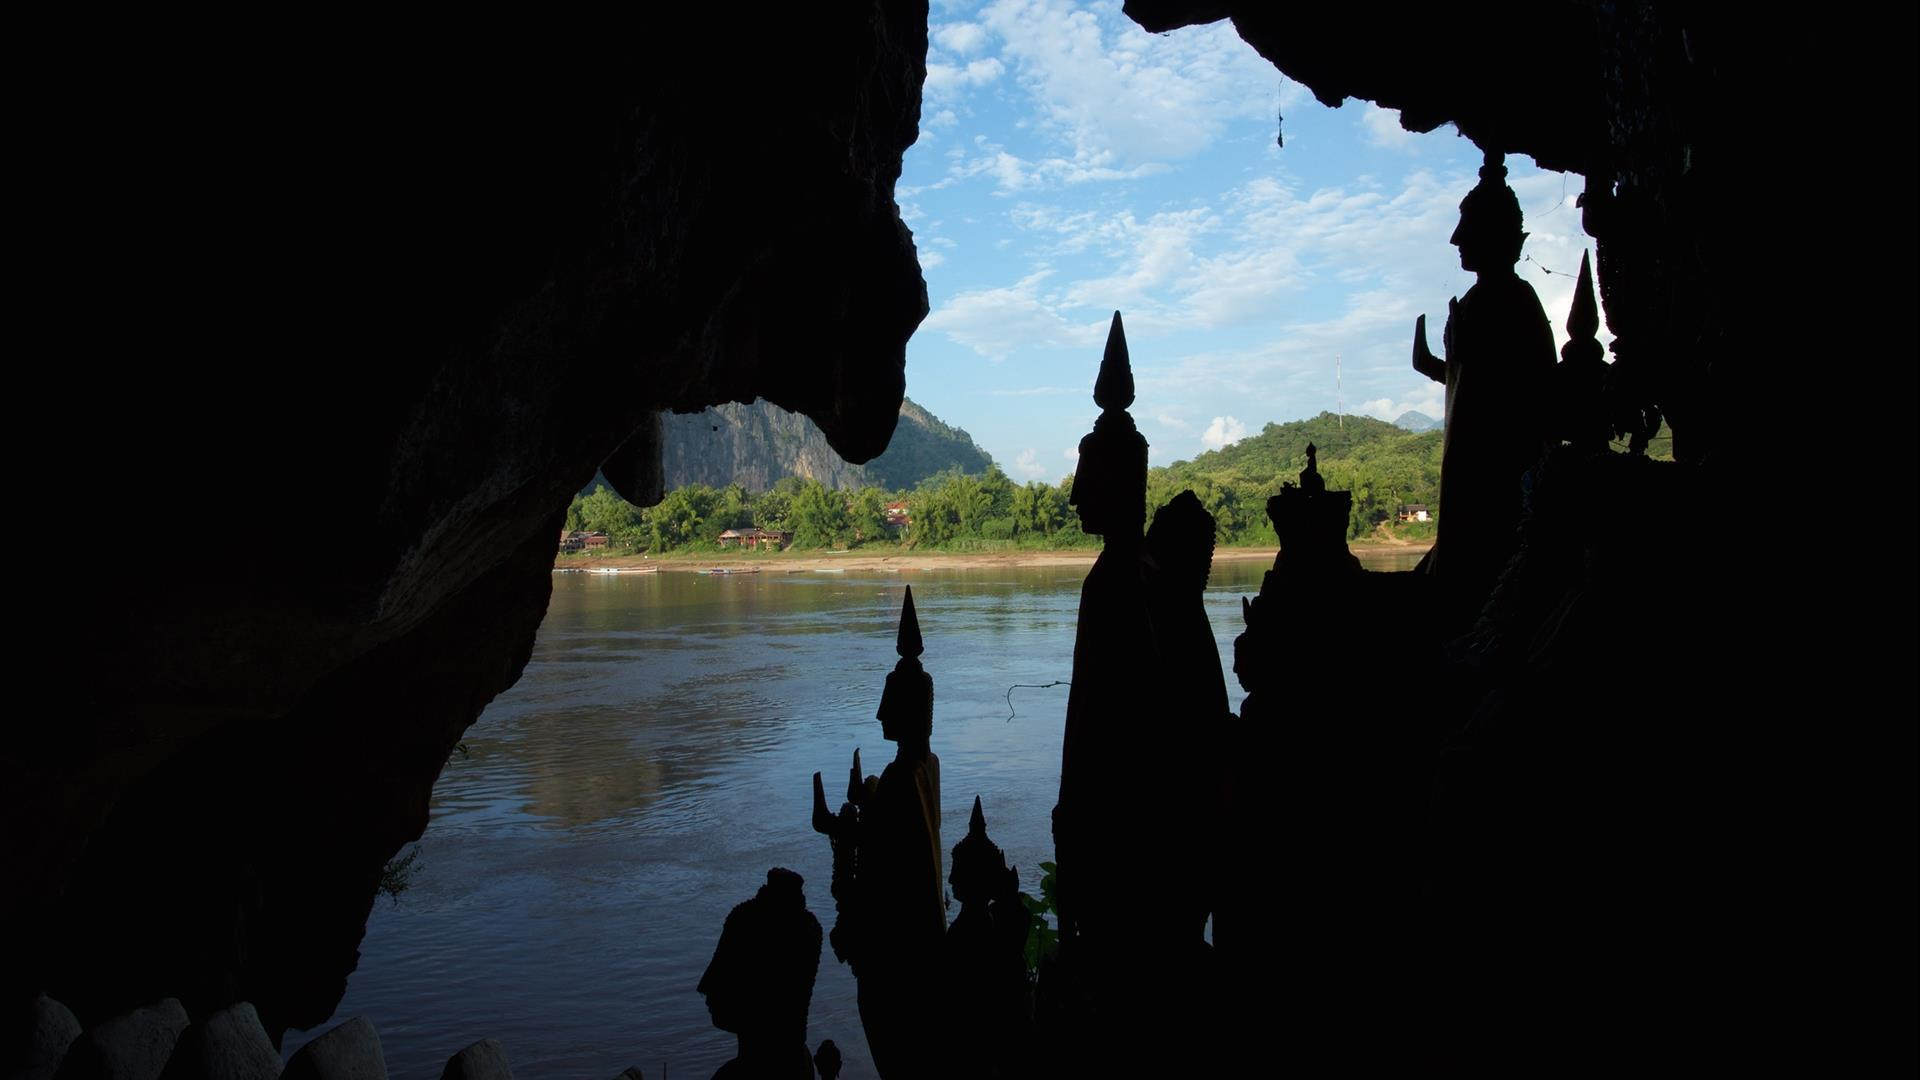 Laos, Luang Prabang : Pak Ou Cave, Kuang Si Waterfall, & Bear Rescue Center - 1 Day | Minivan Day Trip to Luang Prabang's Most Famous Sites